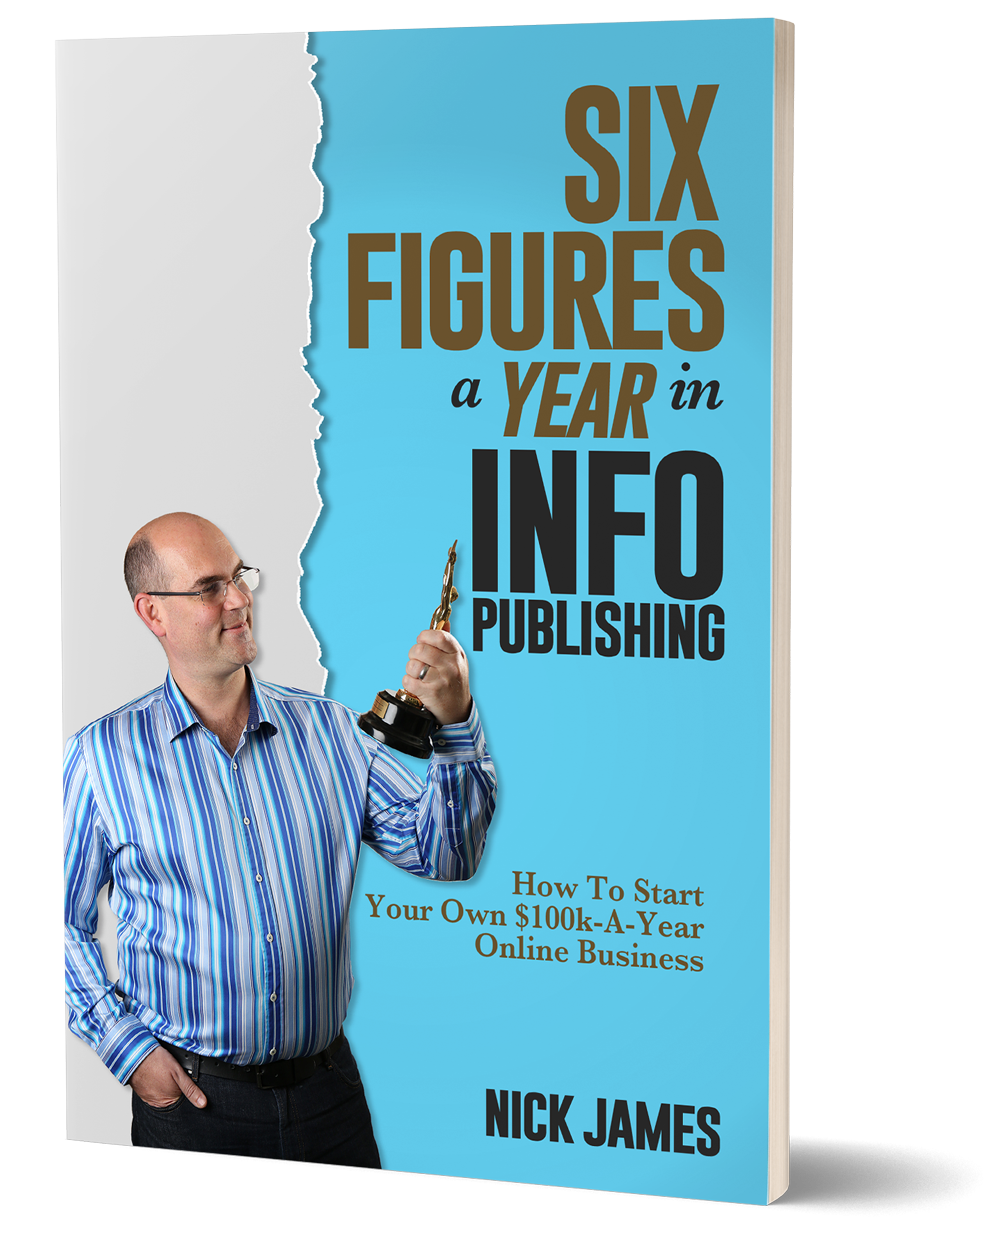 SIX-FIGURES-A-YEAR-IN-INFO-PUBLISHING-REVIEW